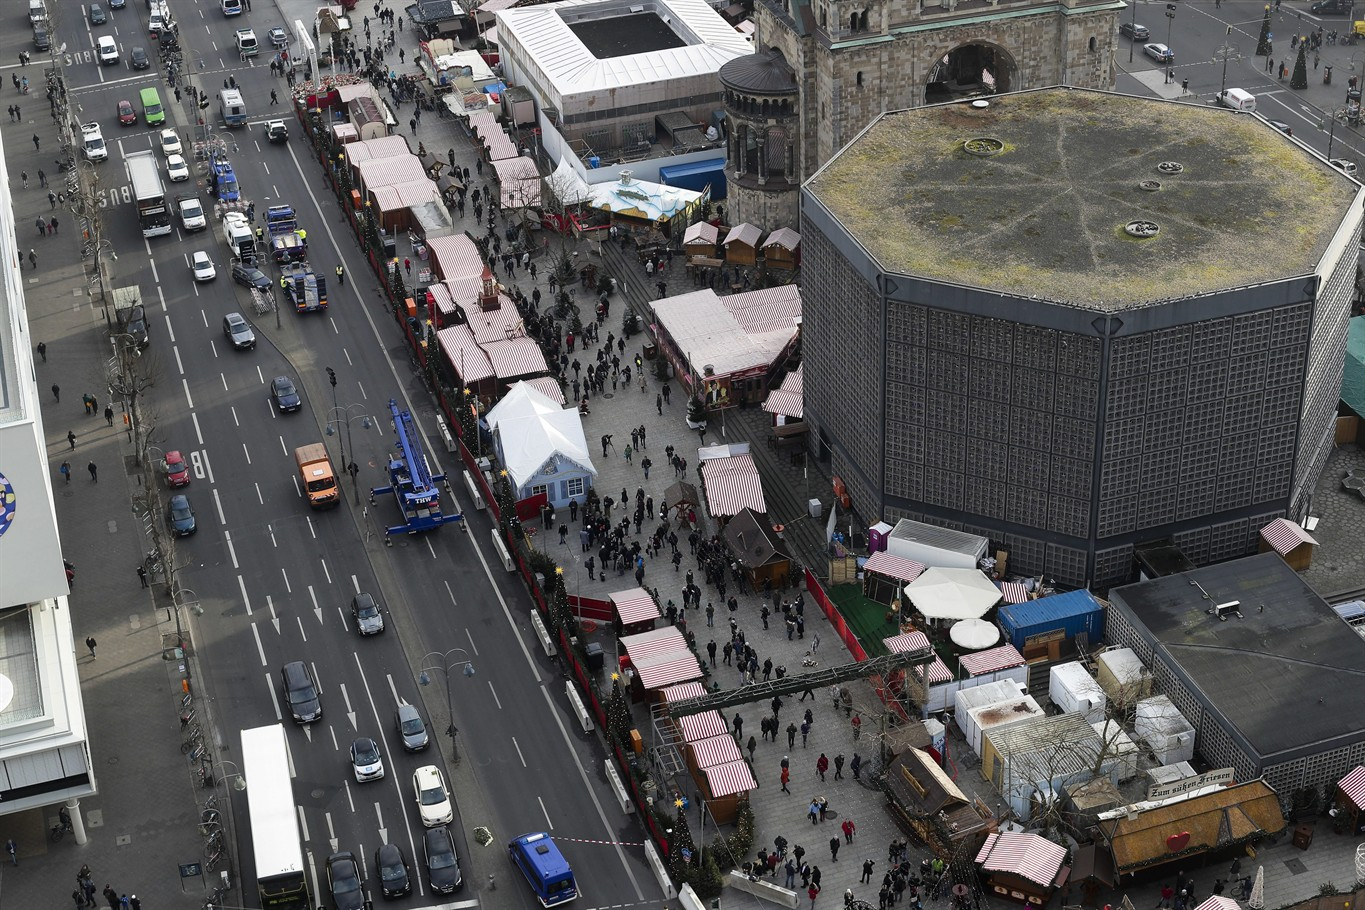 People Walk Over The Reopened Christmas Market Three Days